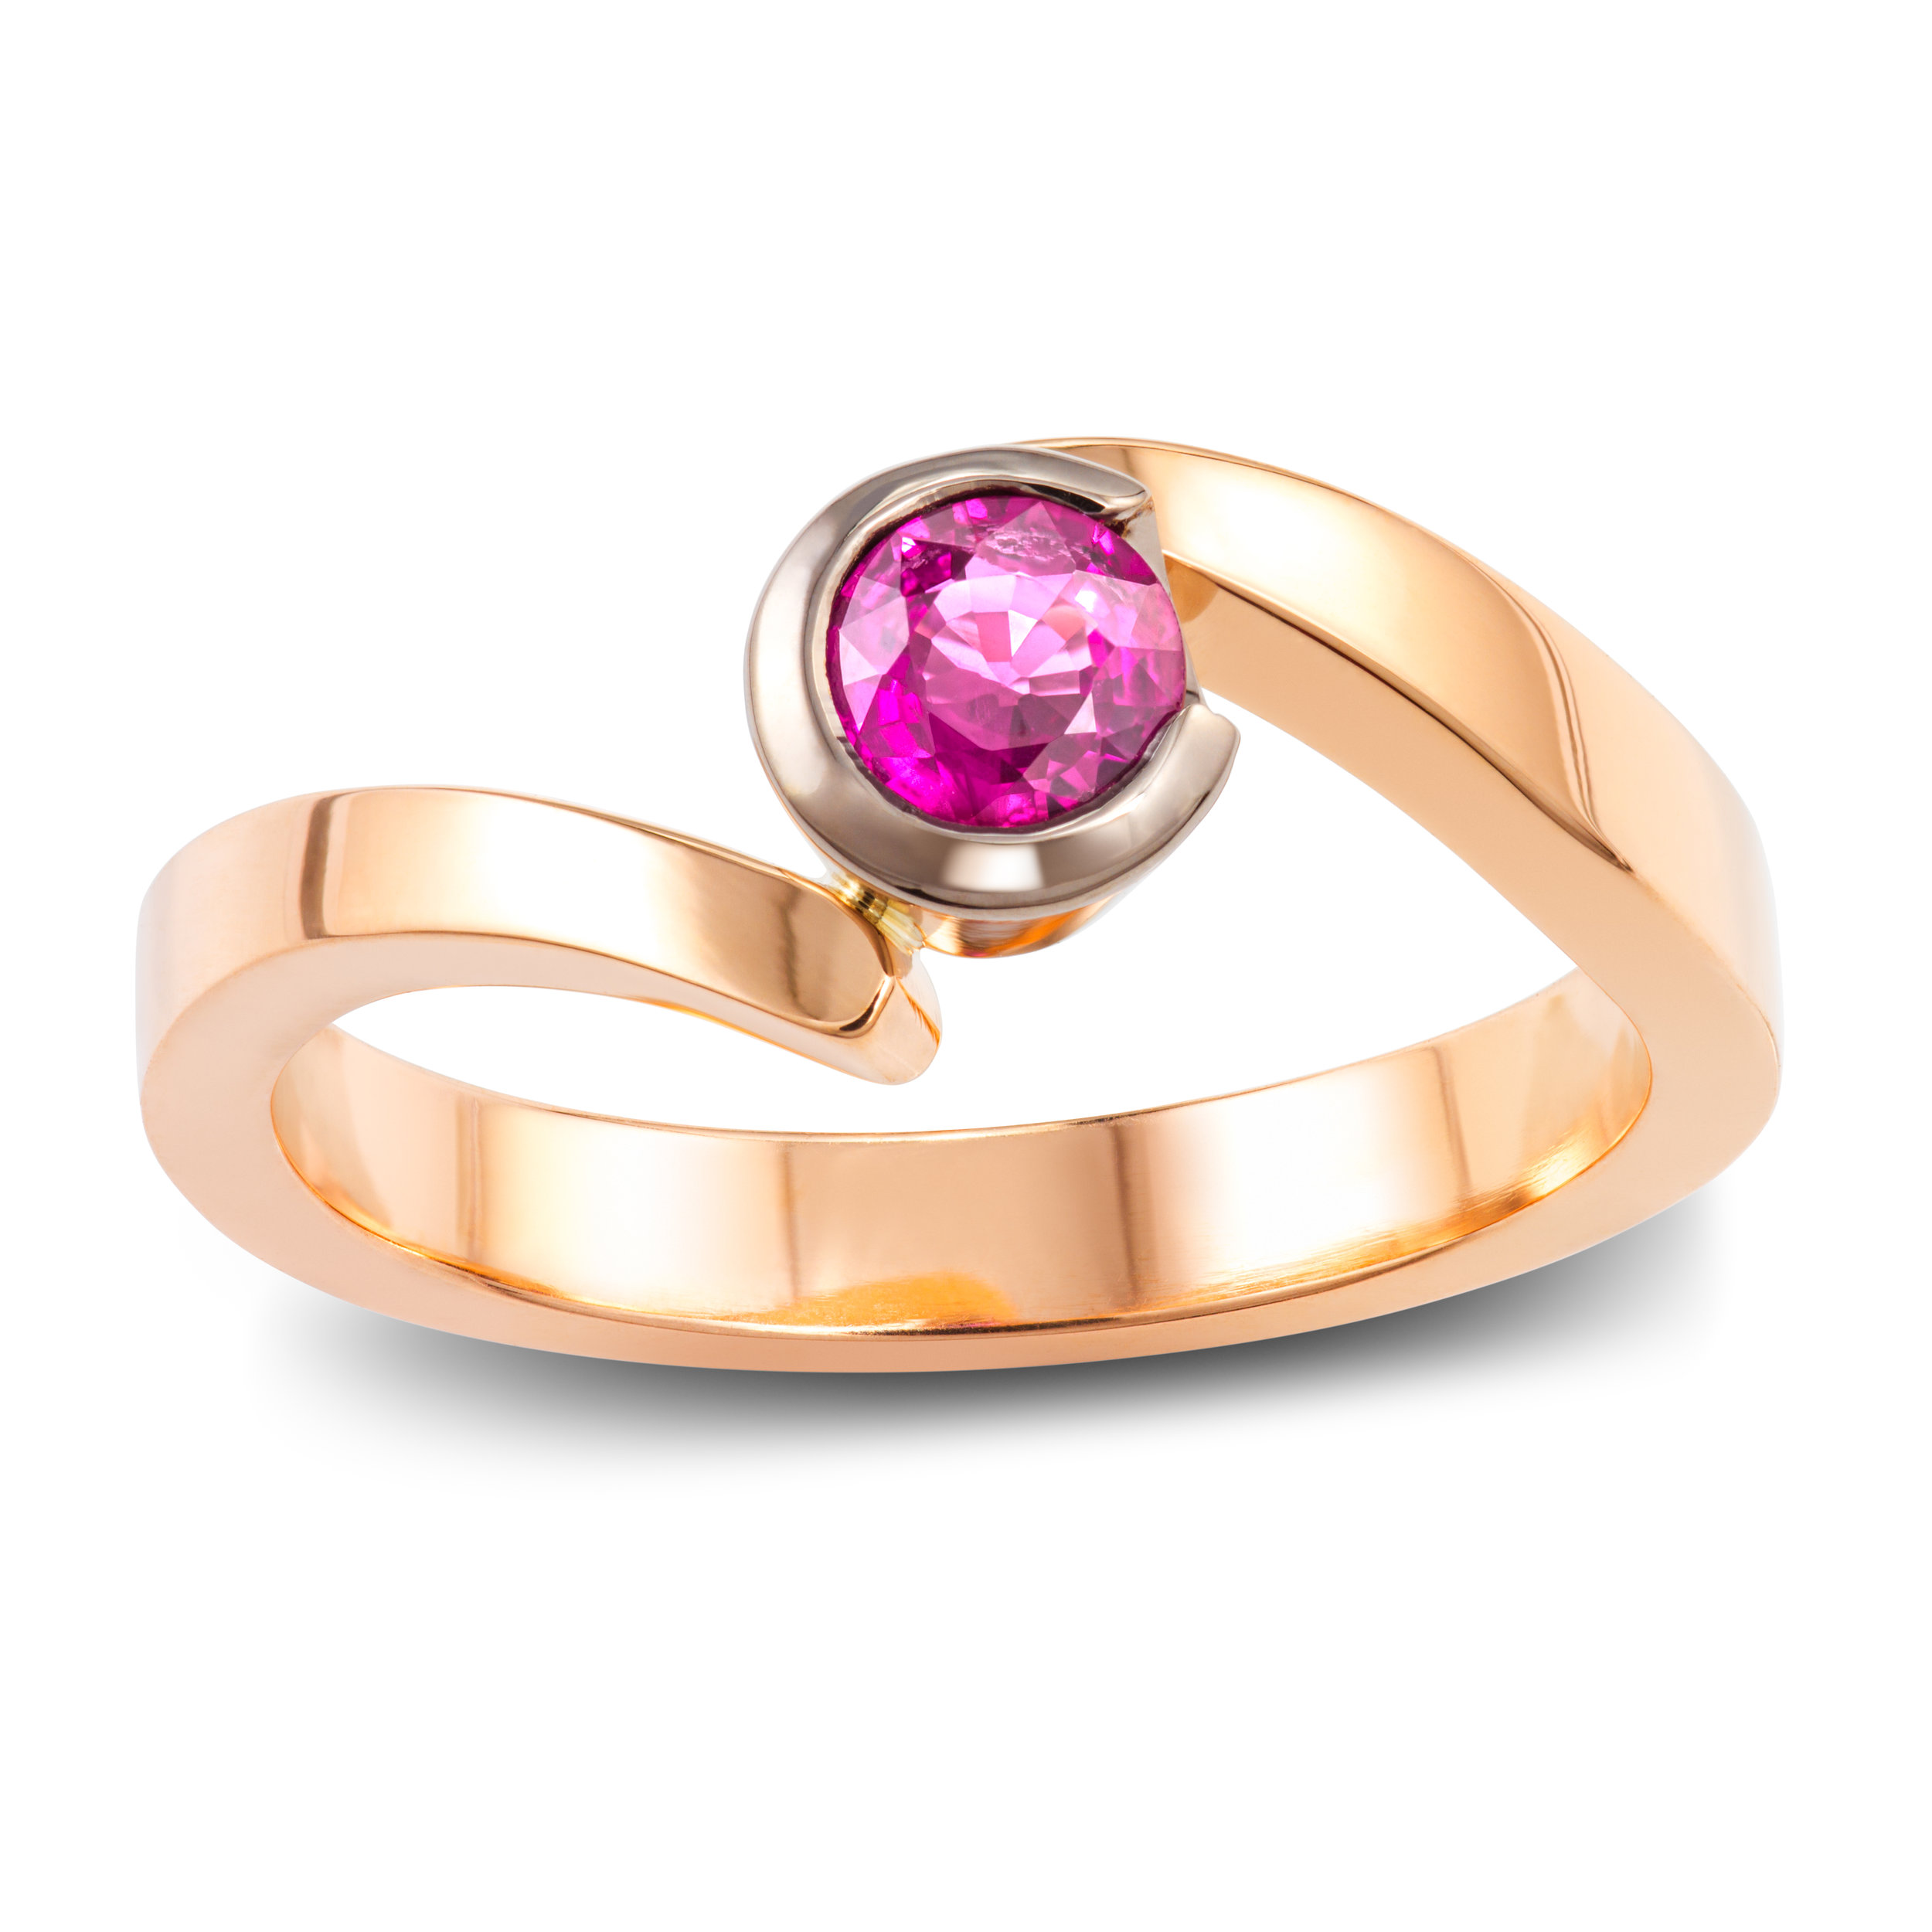 Bespoke 9ct rose gold and lab created pink sapphire dress ring commission